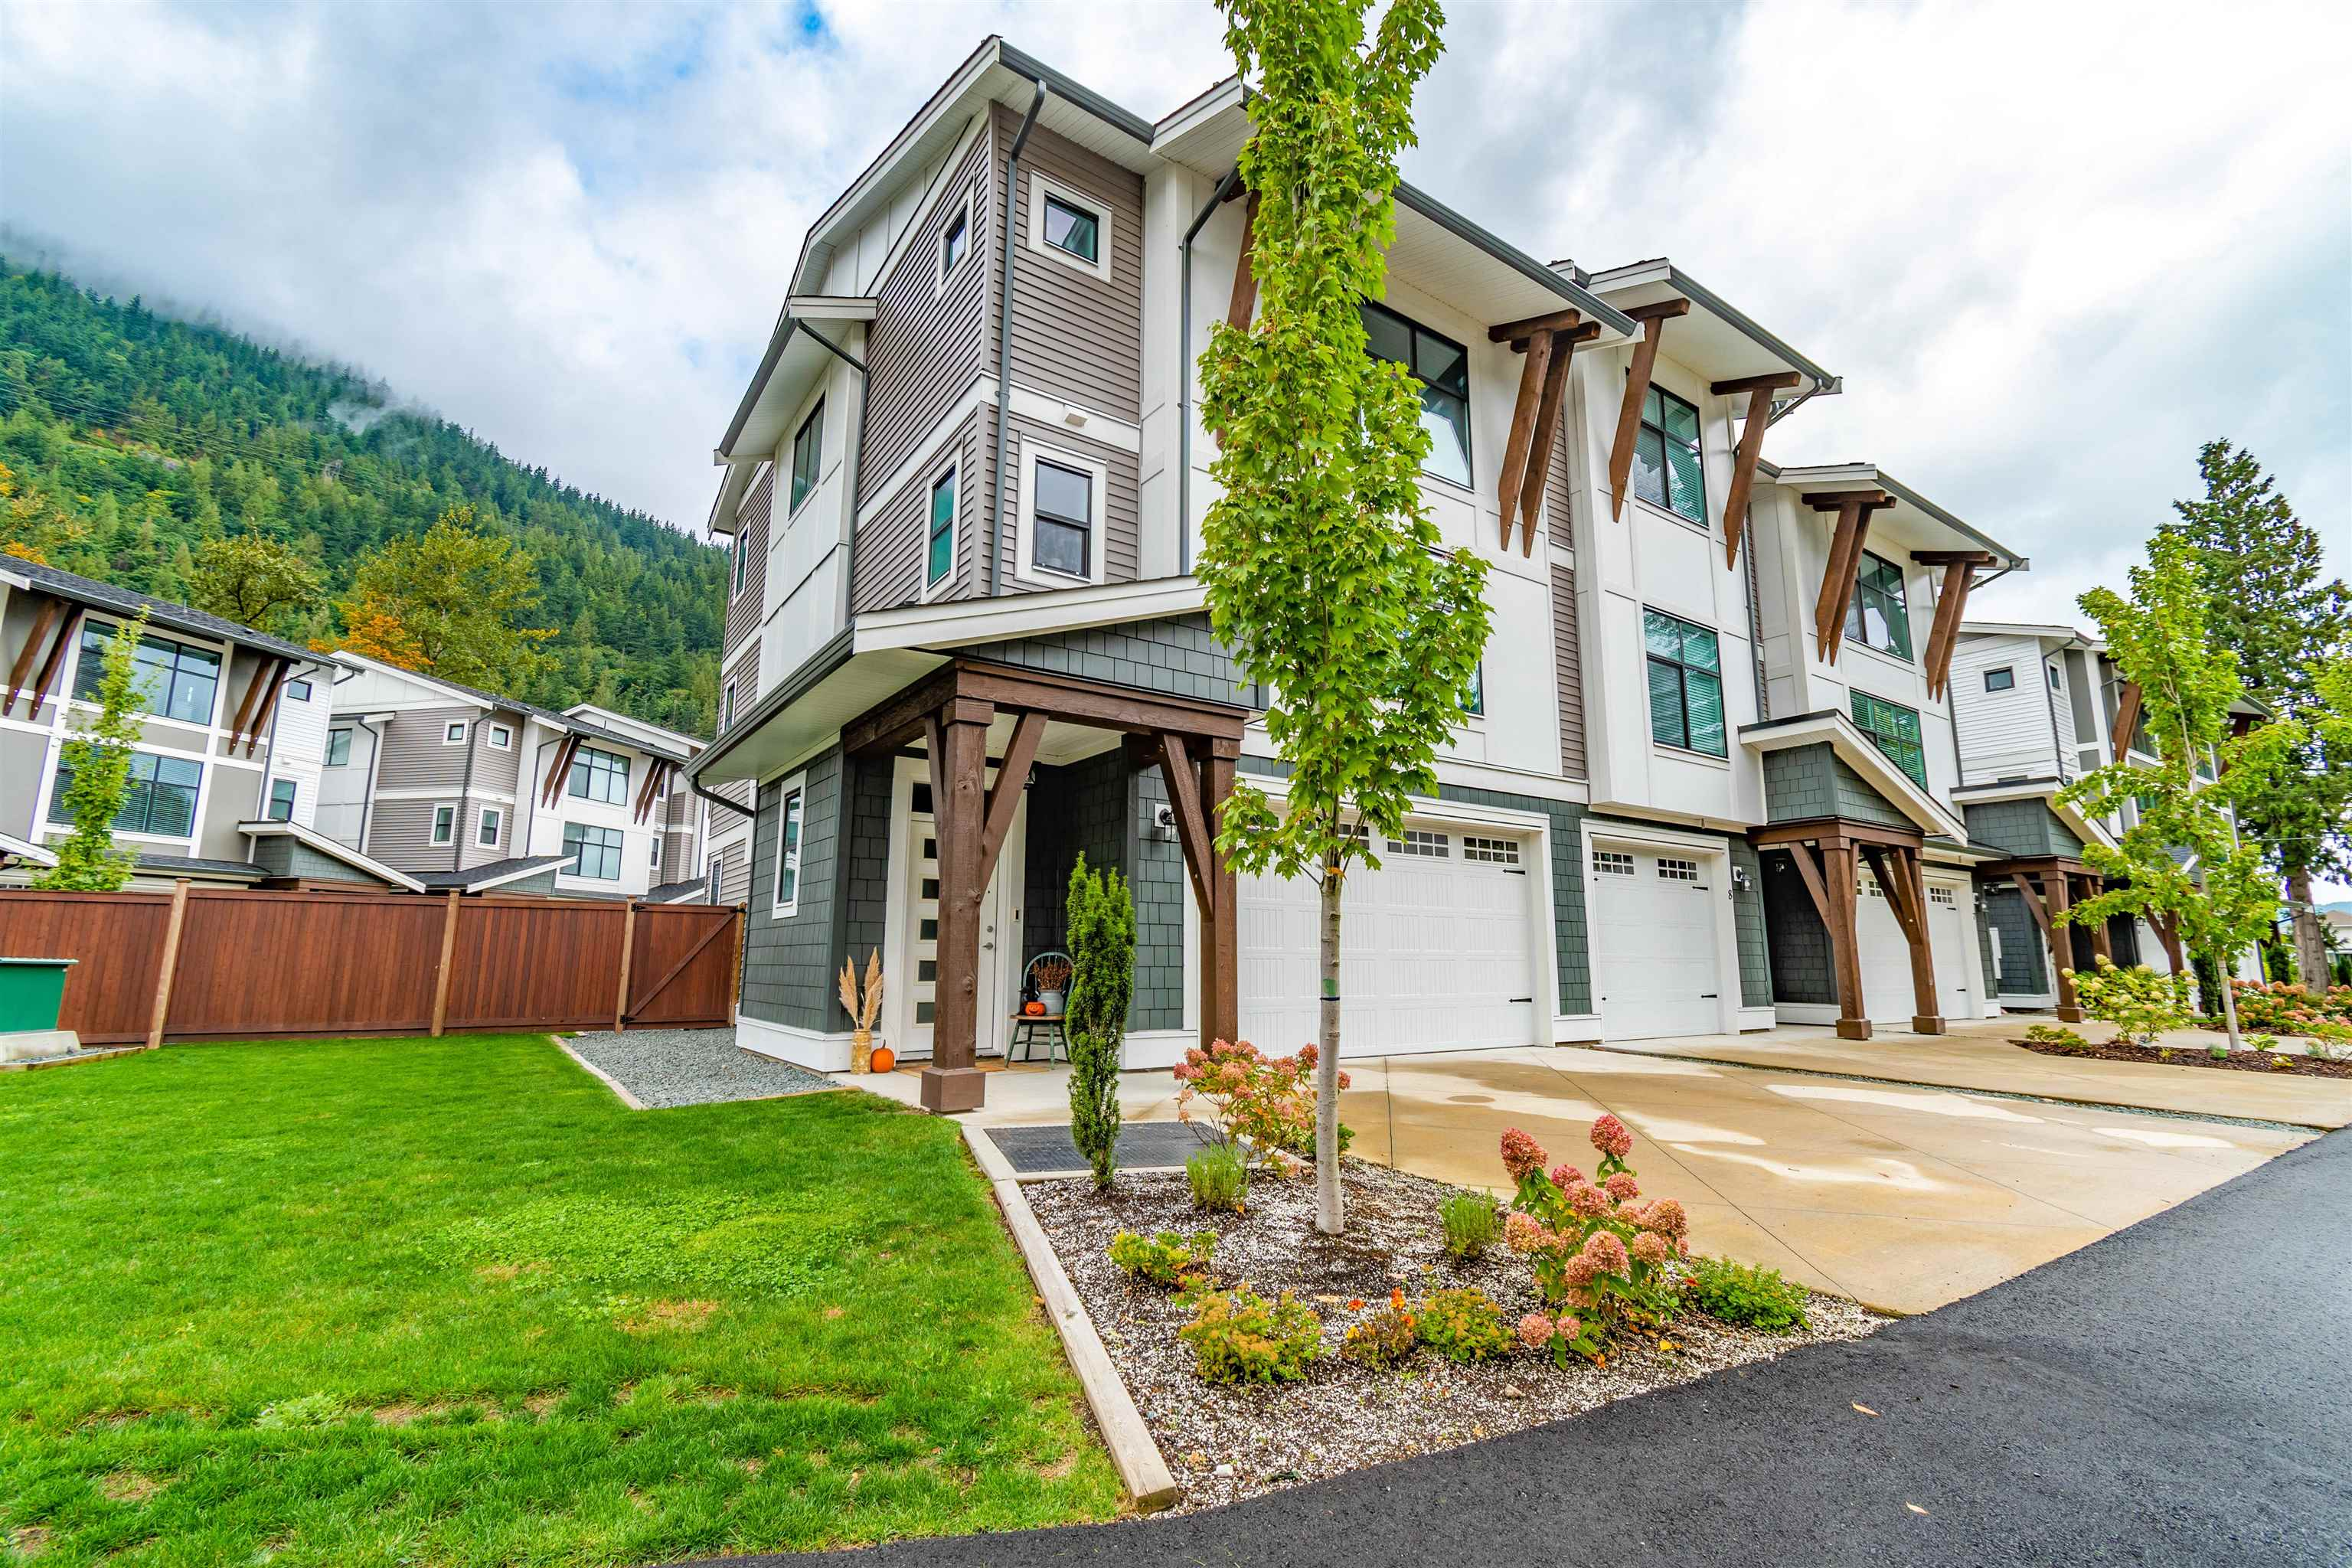 9 386 PINE AVENUE - Harrison Hot Springs Townhouse for sale, 3 Bedrooms (R2623843) - #1